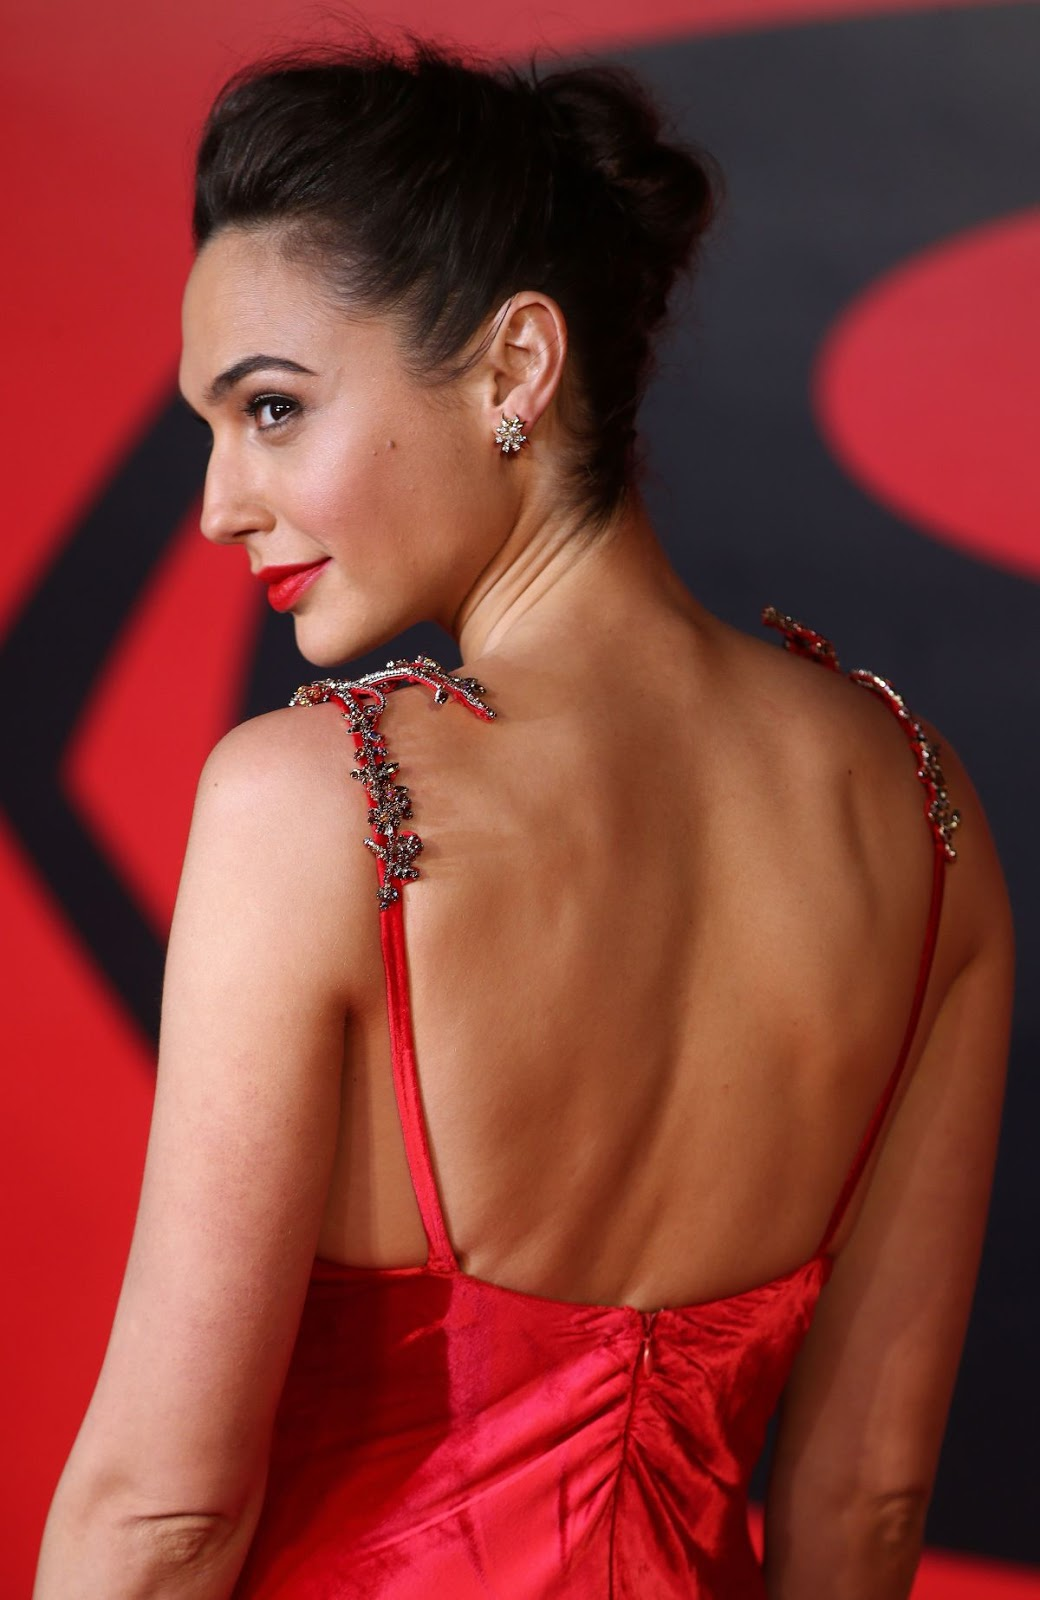 Gal Gadot in Hot Red Dress at 'Batman vs Superman - Dawn of Justice' London Premiere